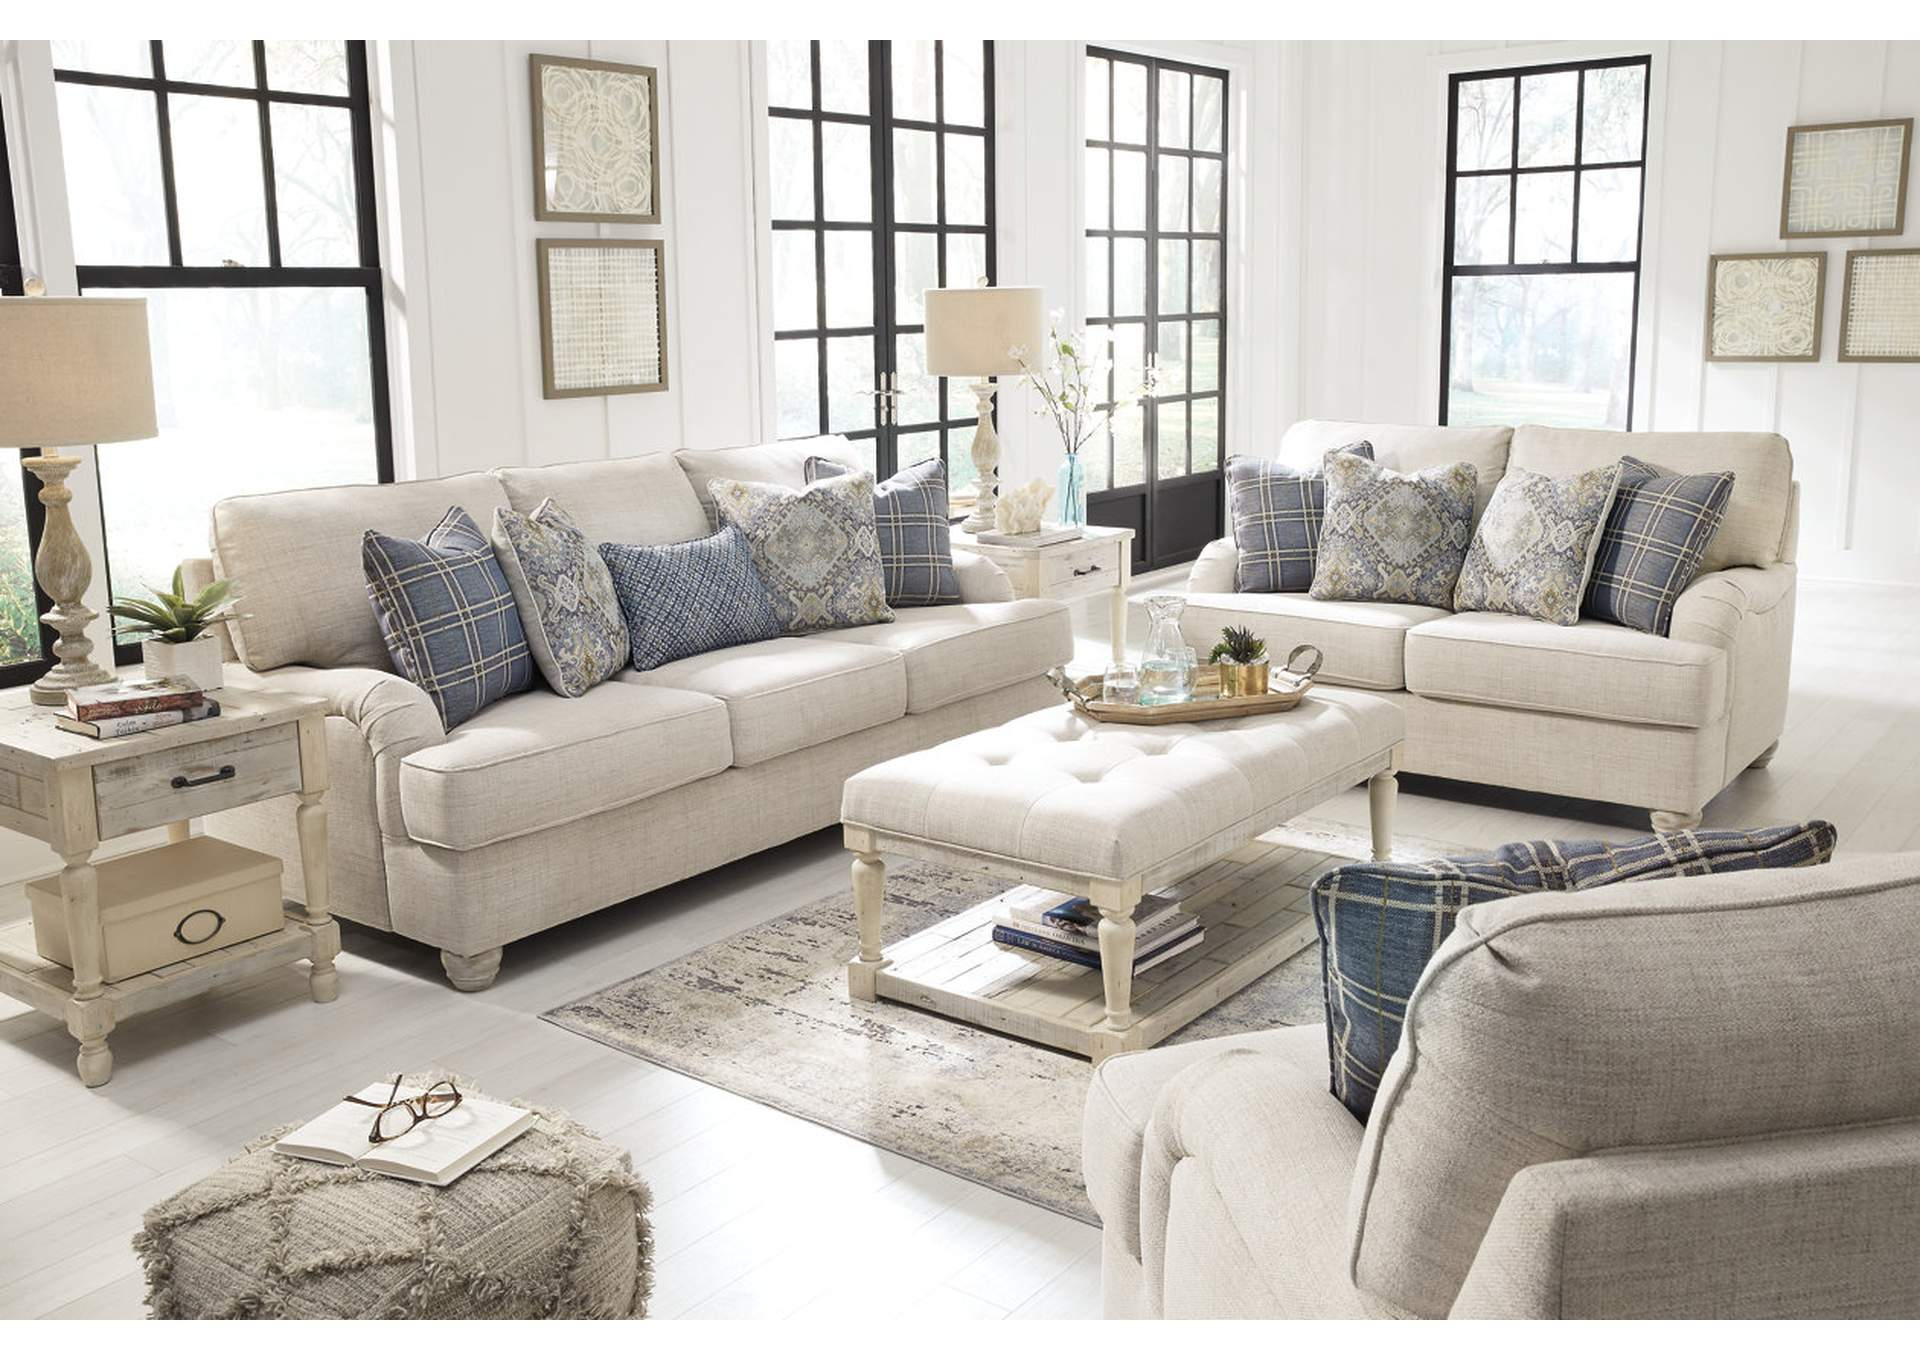 Traemore Linen Queen Sofa Sleeper,Signature Design By Ashley